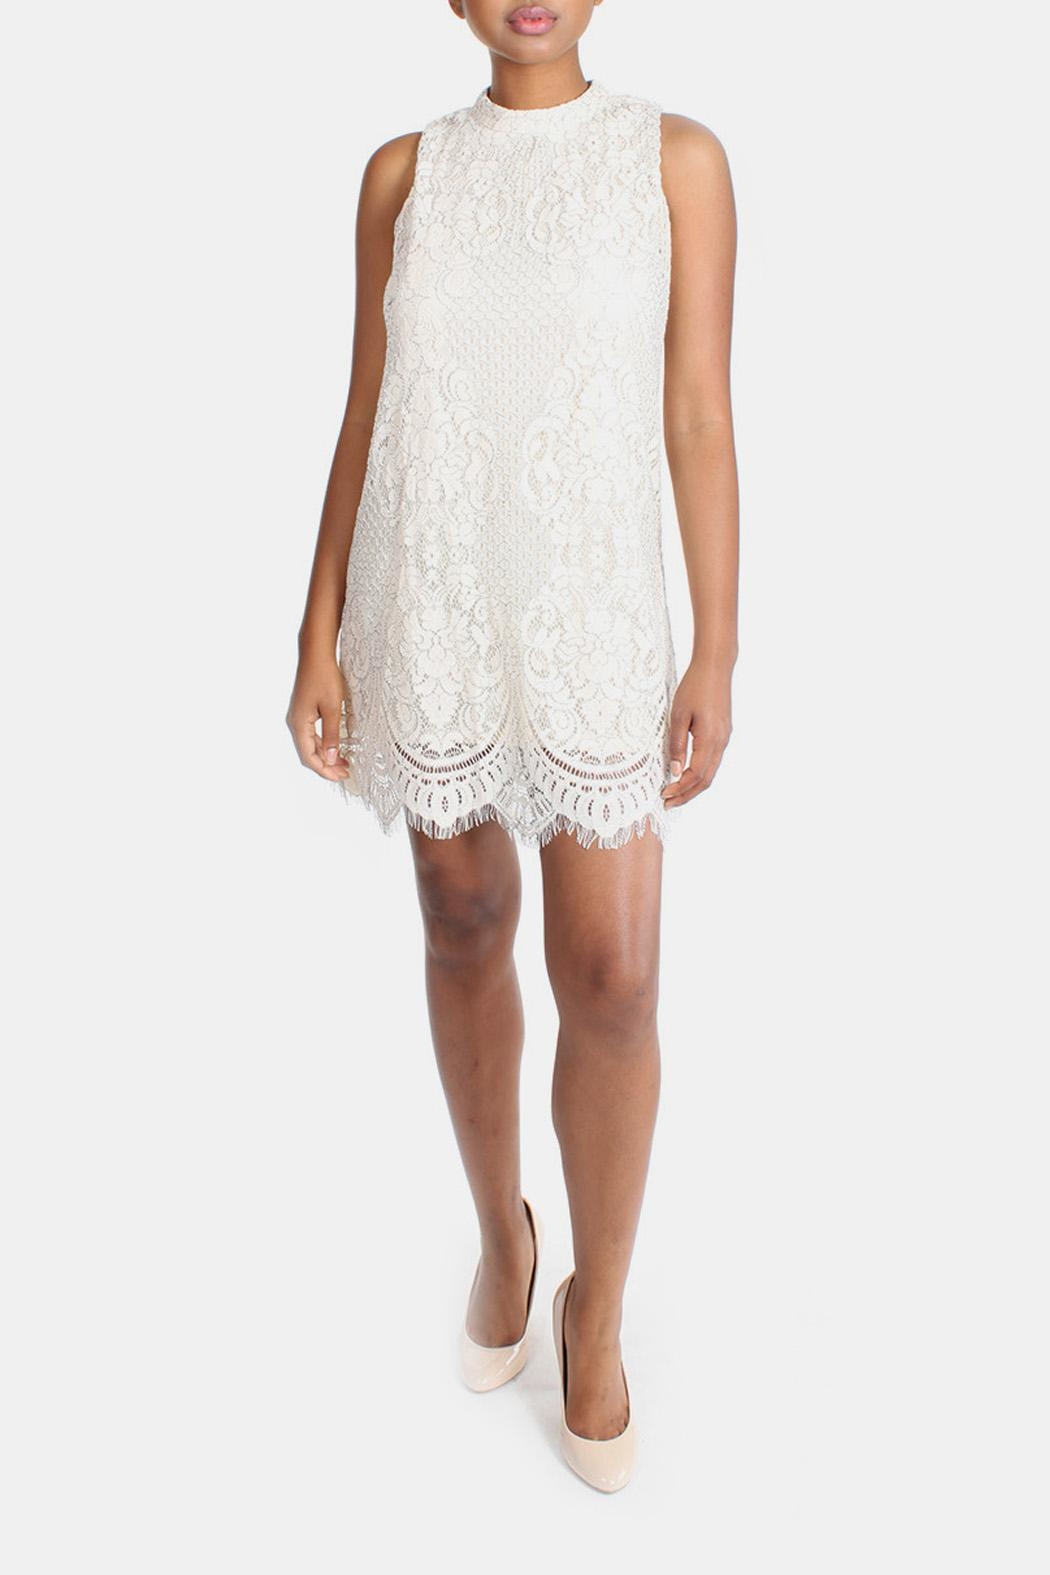 Skies Are Blue Cream Lace High-Neck-Dress - Main Image